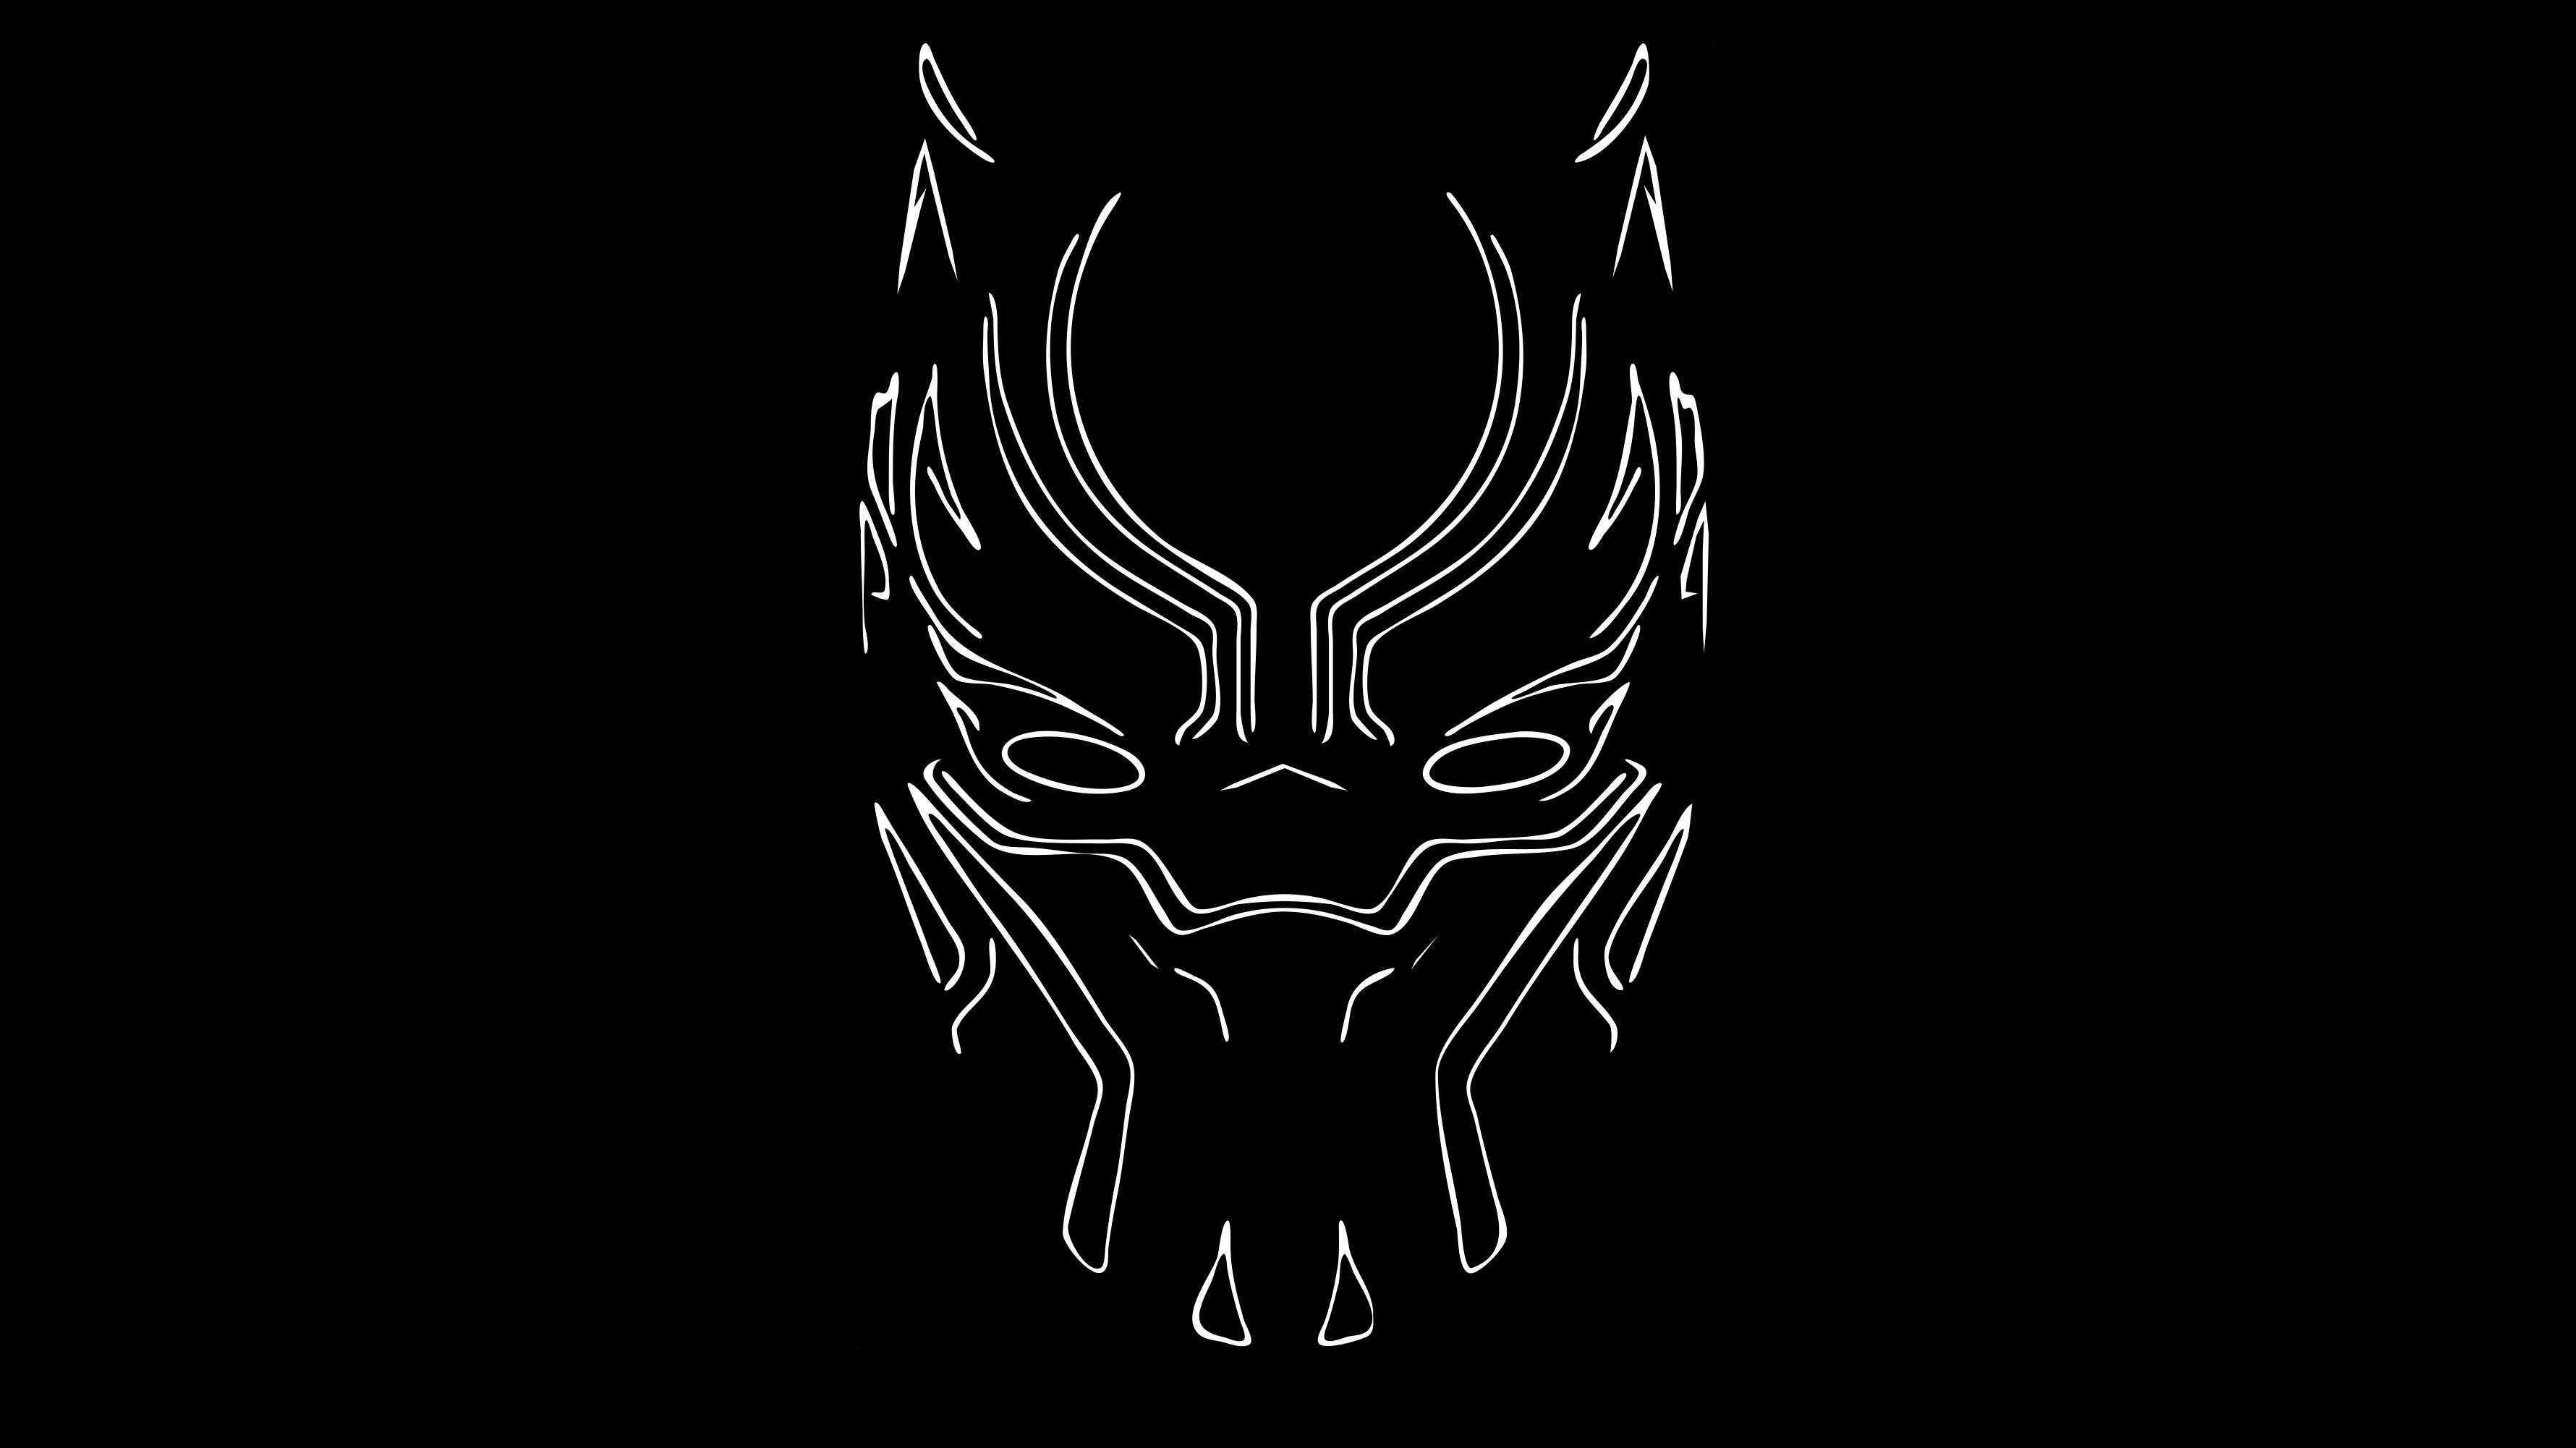 Black Panther Logo Wallpapers Top Free Black Panther Logo